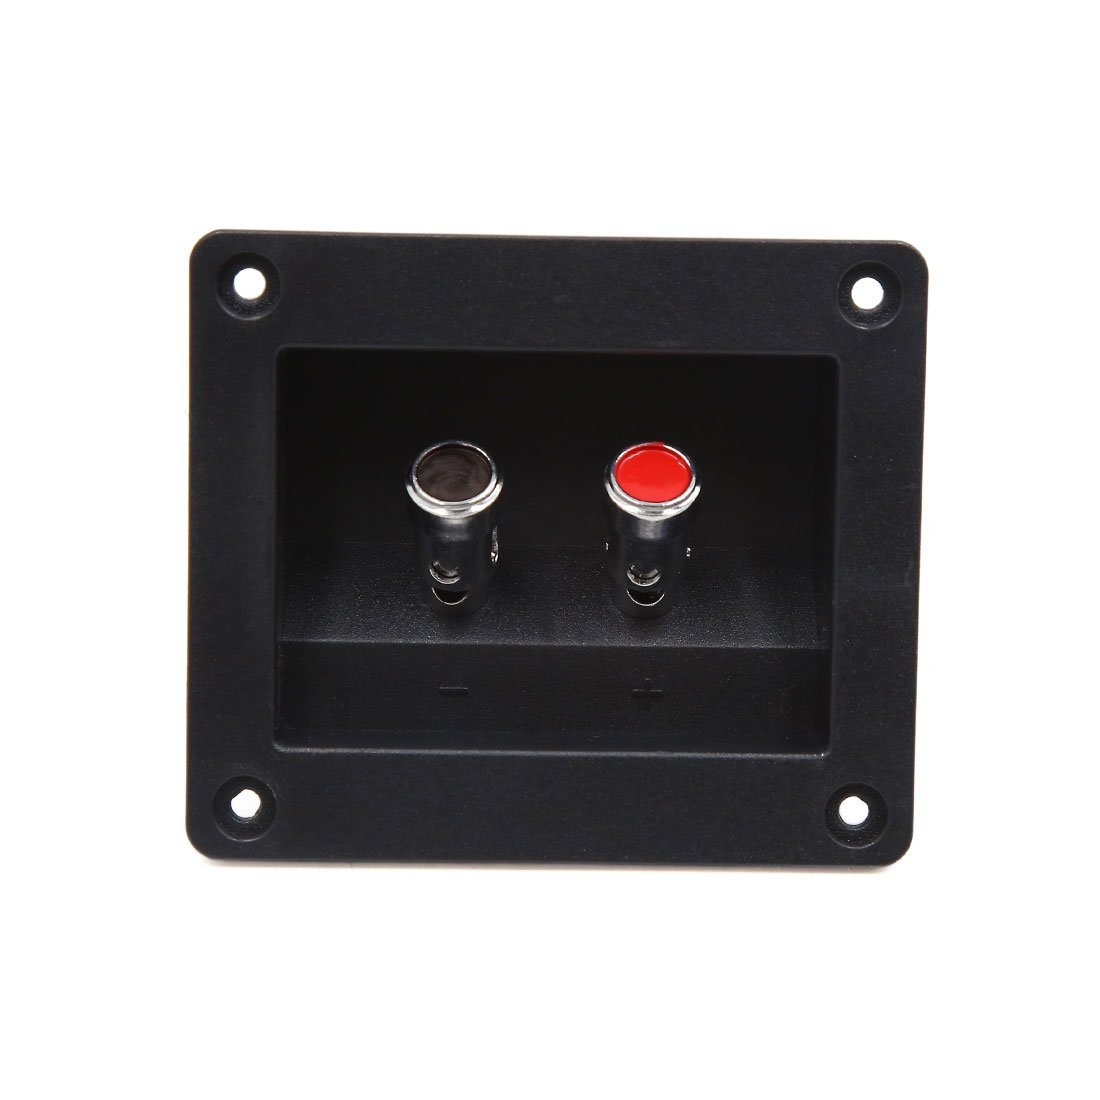 uxcell 2 Way Square Binding Post Speaker Box Terminal Cup Plate Connector Board for Car